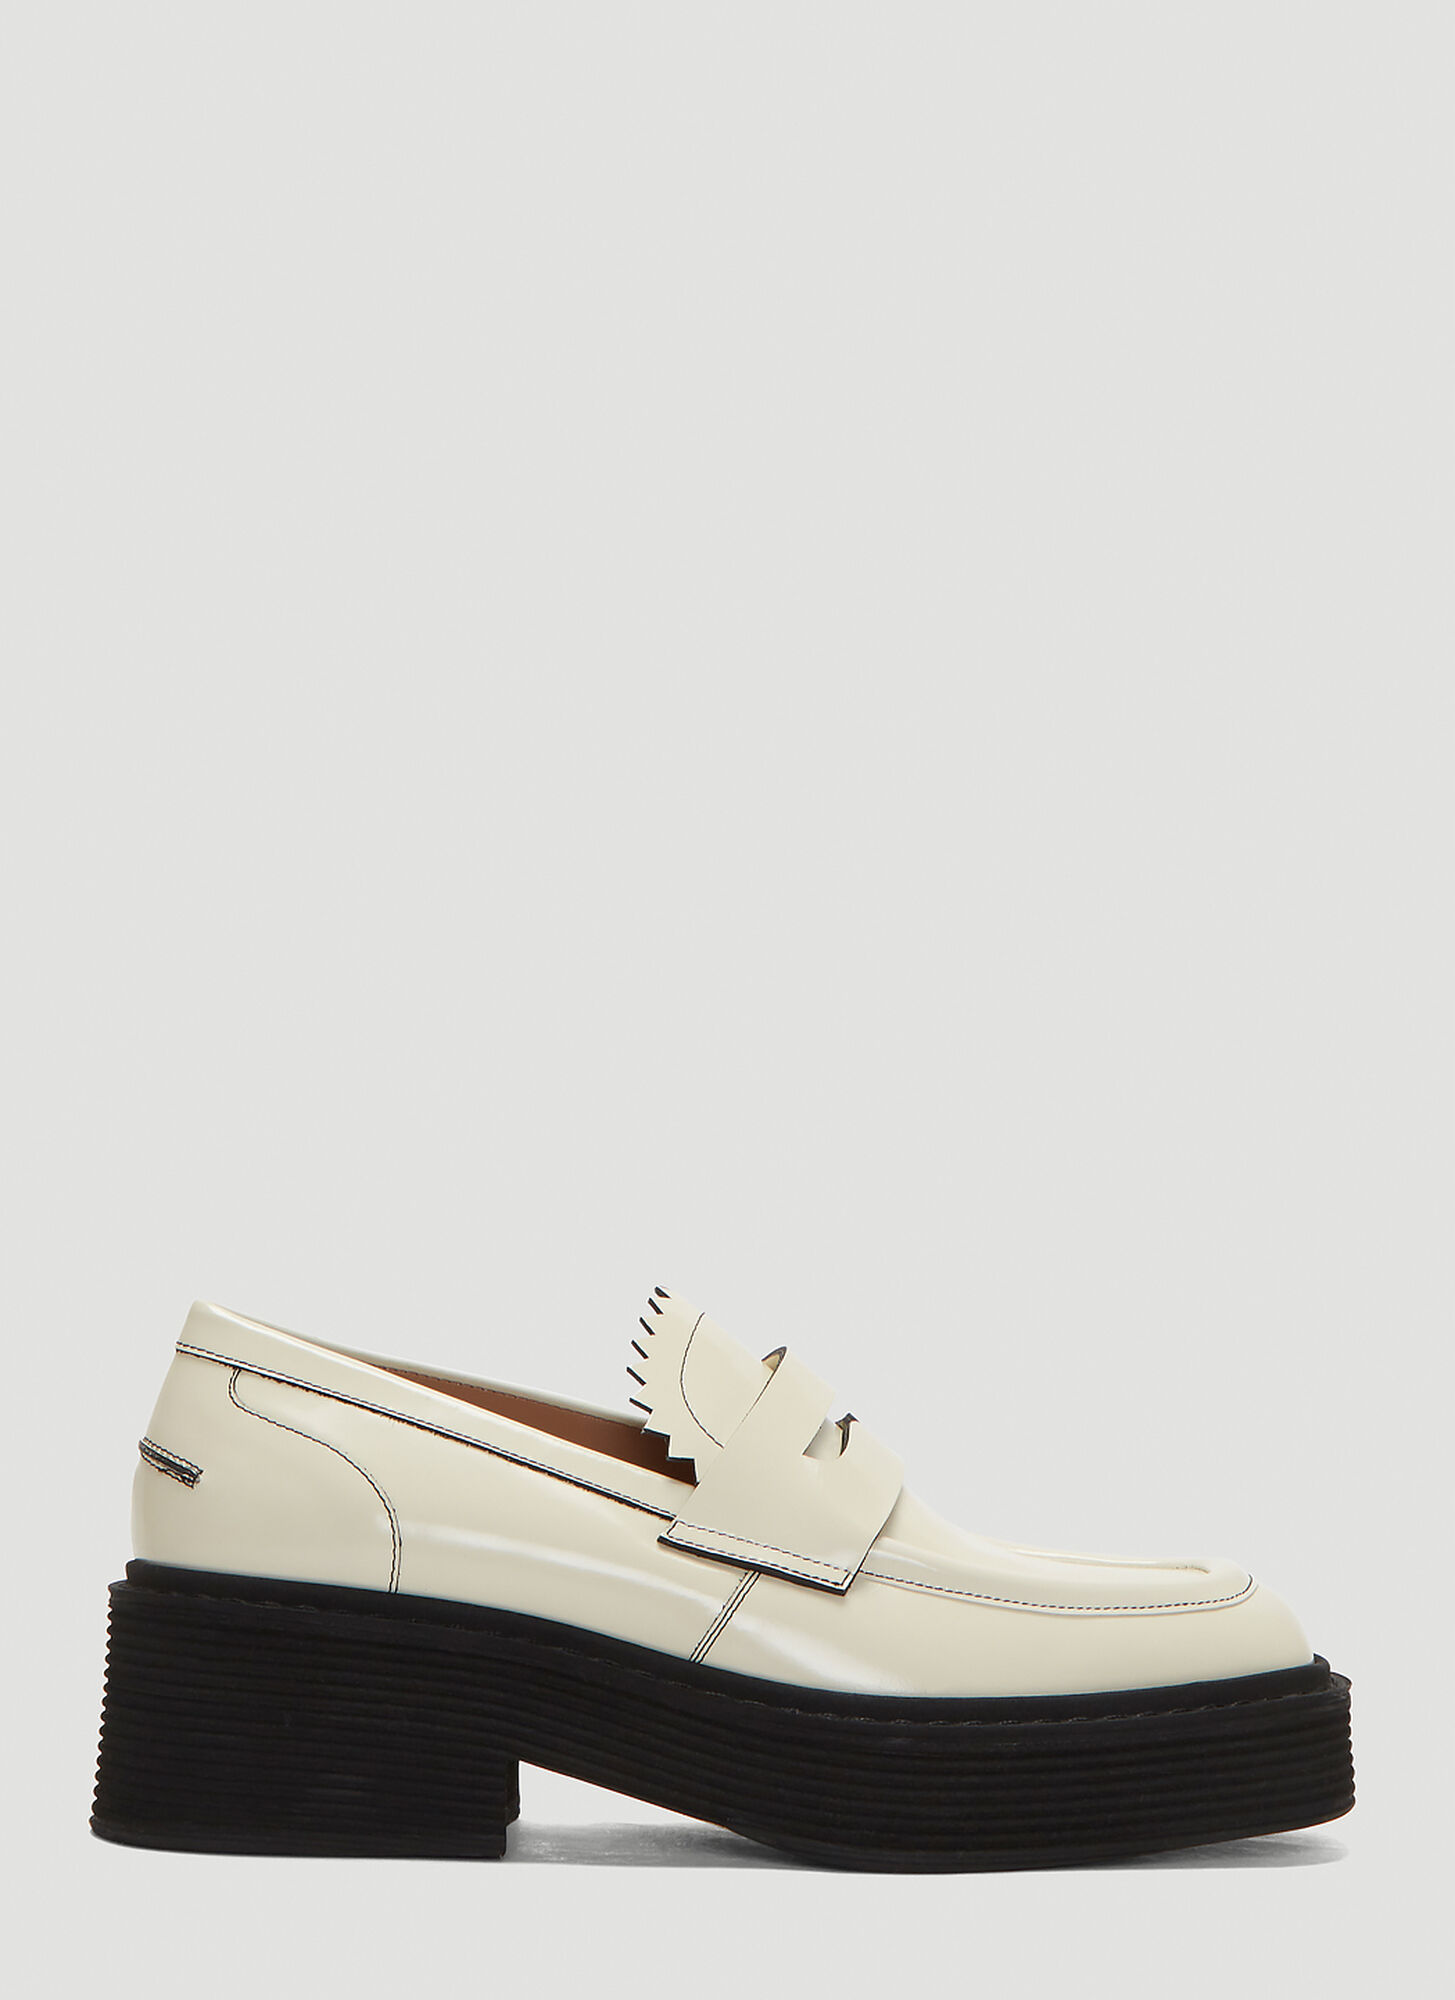 Marni Platform Loafers in White